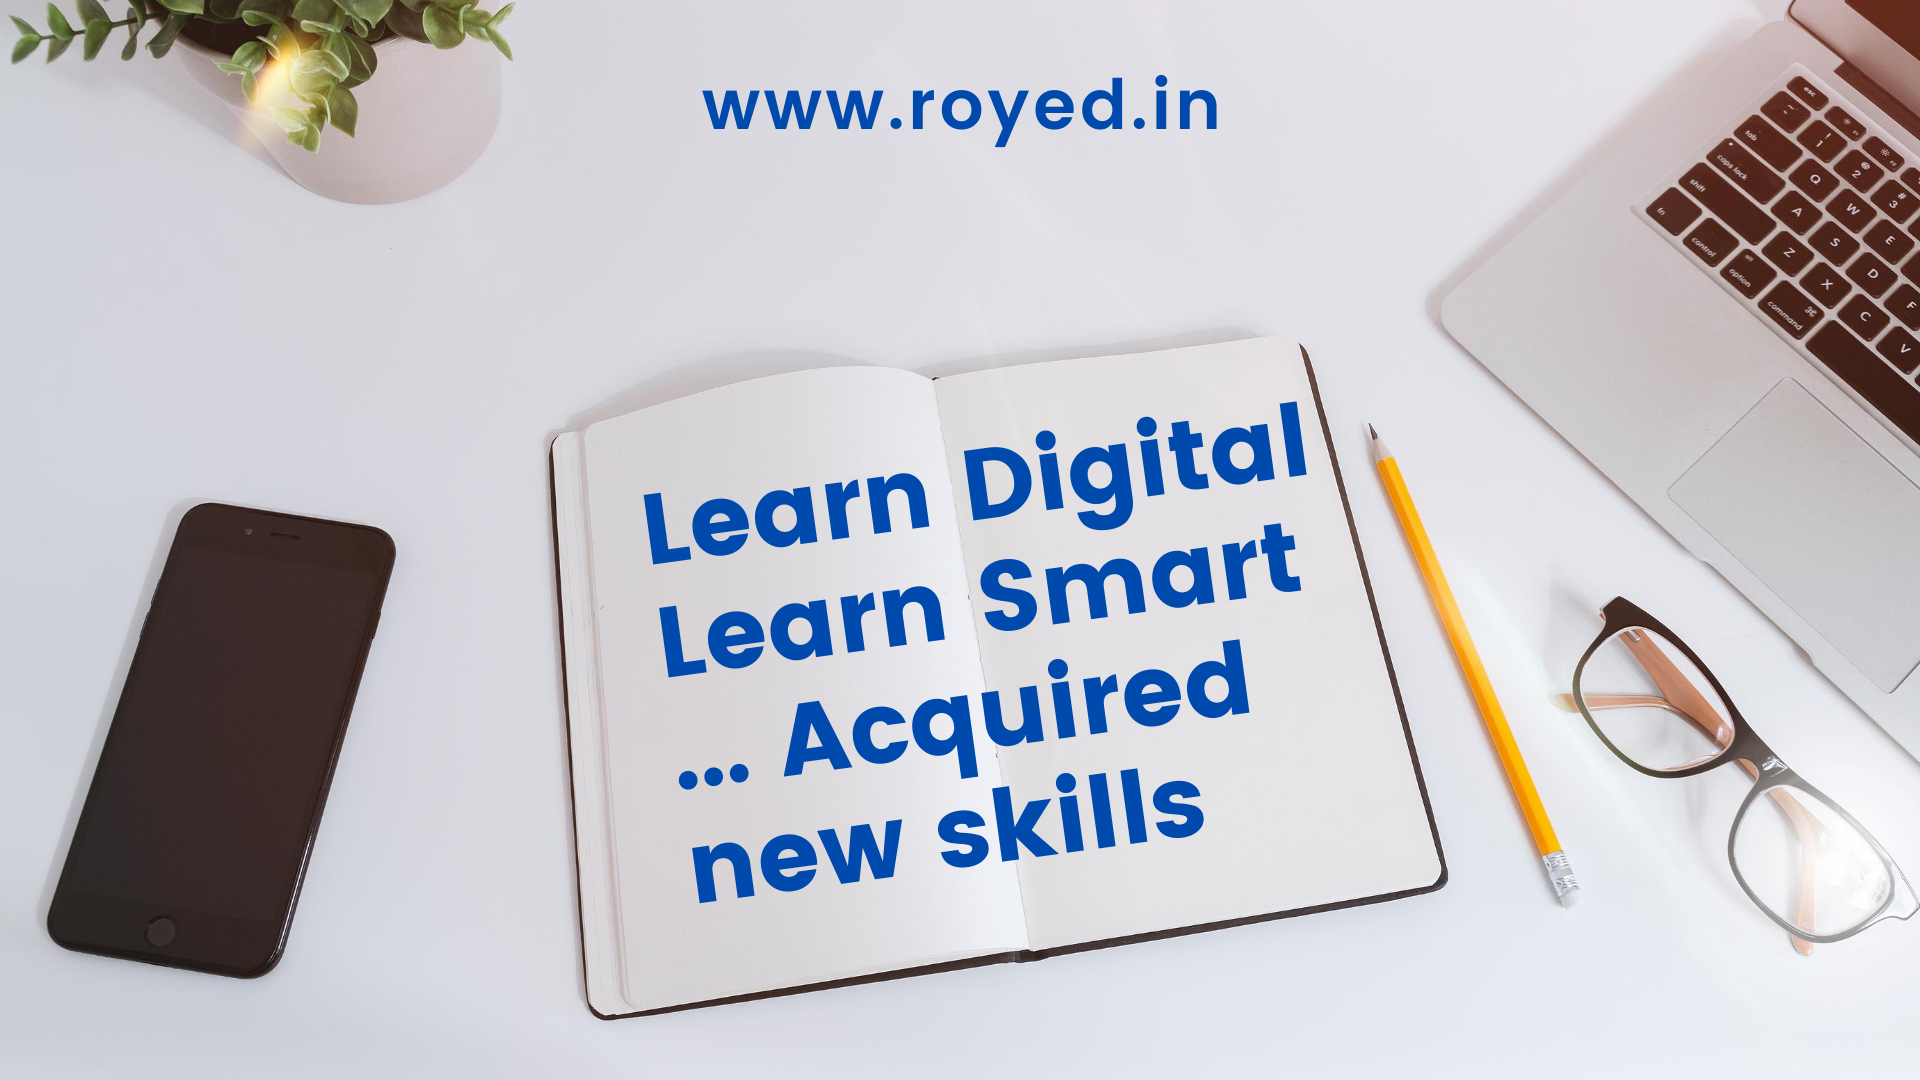 Learn digital by royed training